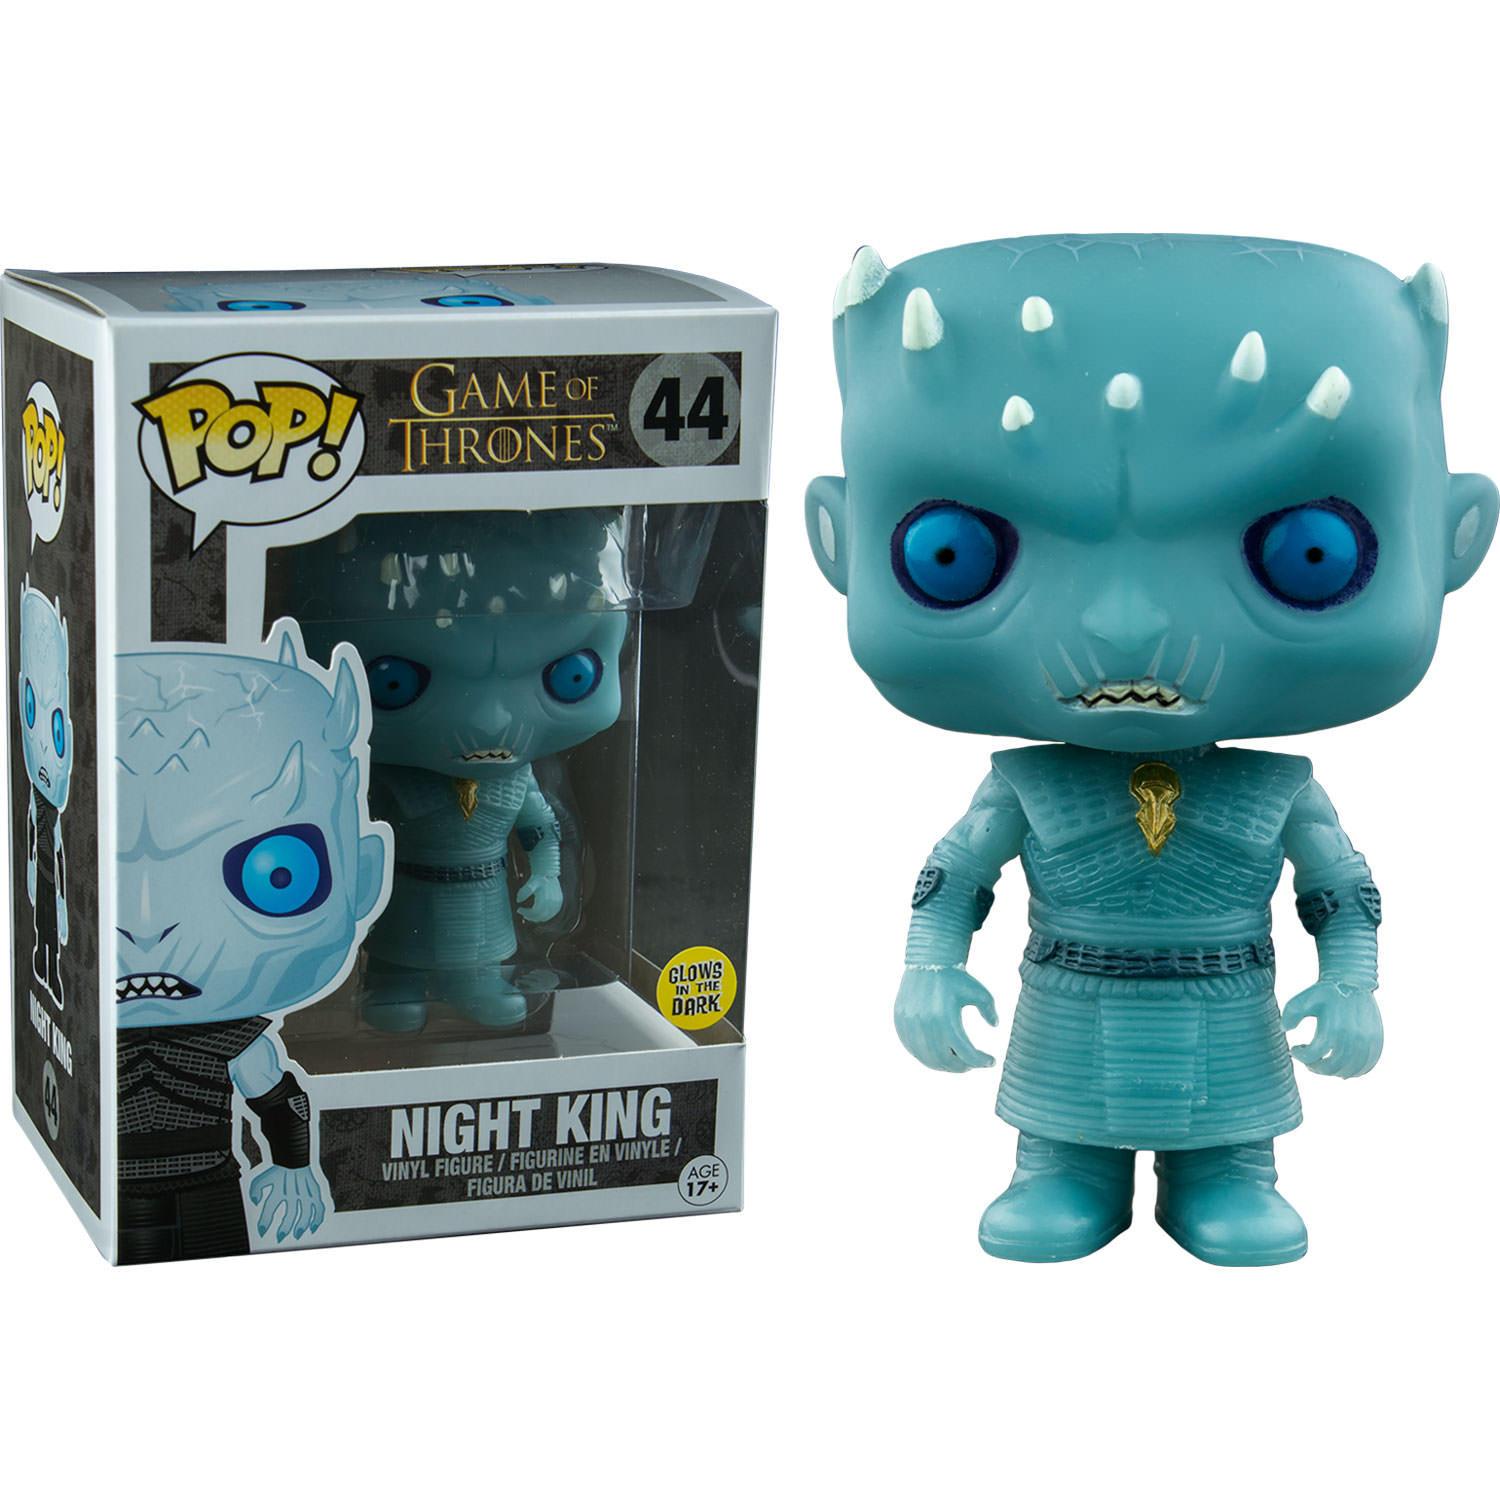 33 Night King From Game Of Thrones By Scepterdpinoy On: Funko Game Of Thrones Night King Glow In The Dark Pop